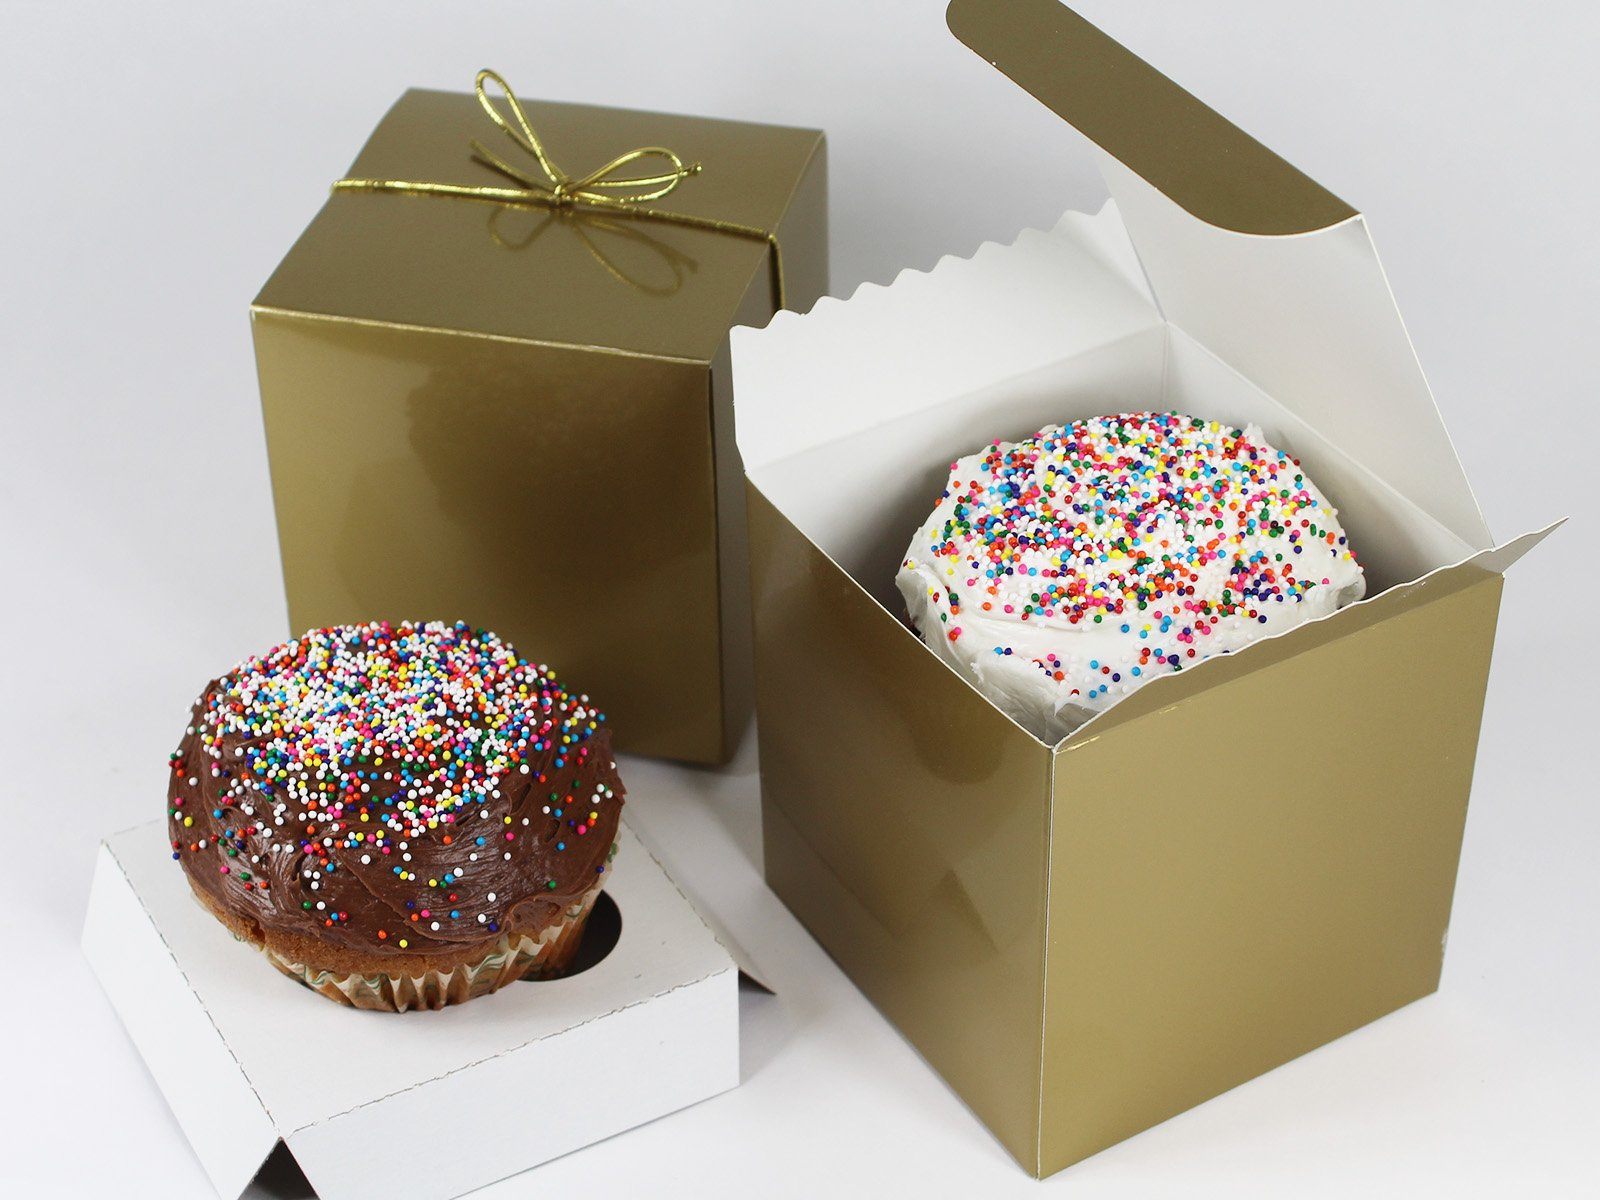 Gold Single Cupcake Gift Box Set with Inserts and Metallic Gold Stretch Loop Bow by Saybrook. Set of 10 Individual 4x4x4 Square Boxes, Holders and Bows (10, Gold)